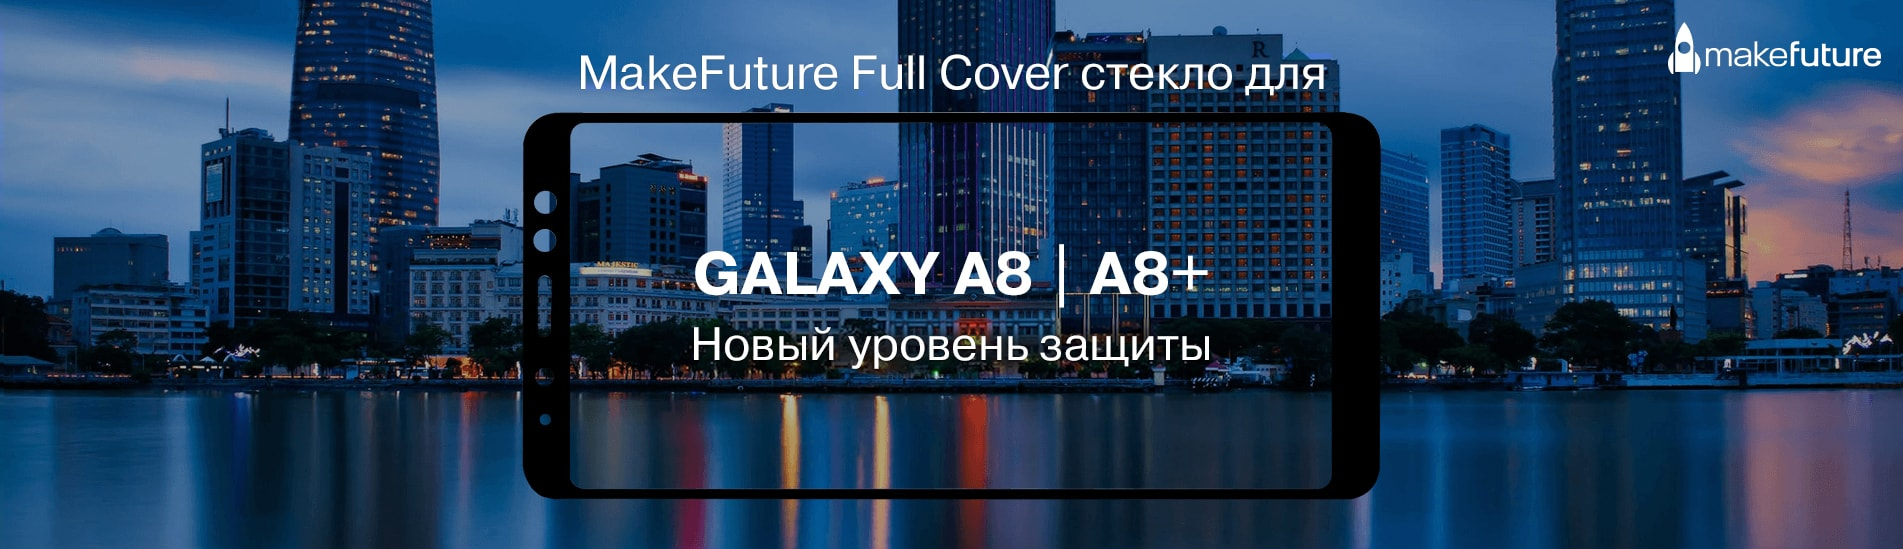 Захисне скло Samsung Galaxy A8, Samsung Galaxy A8 Plus